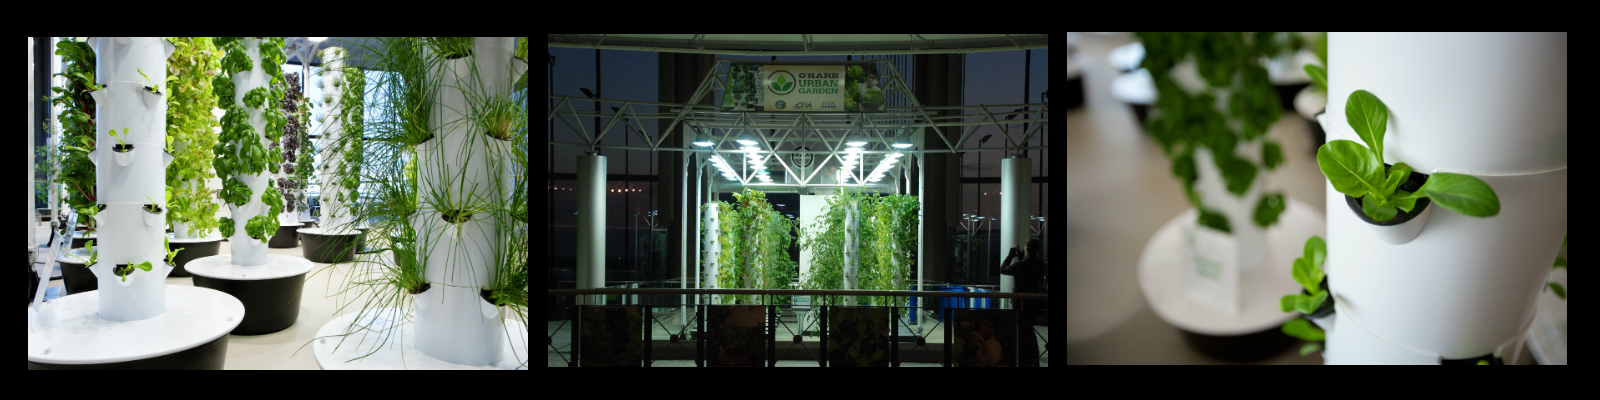 Aeroponic Garden | Chicago O\'Hare International Airport (ORD)